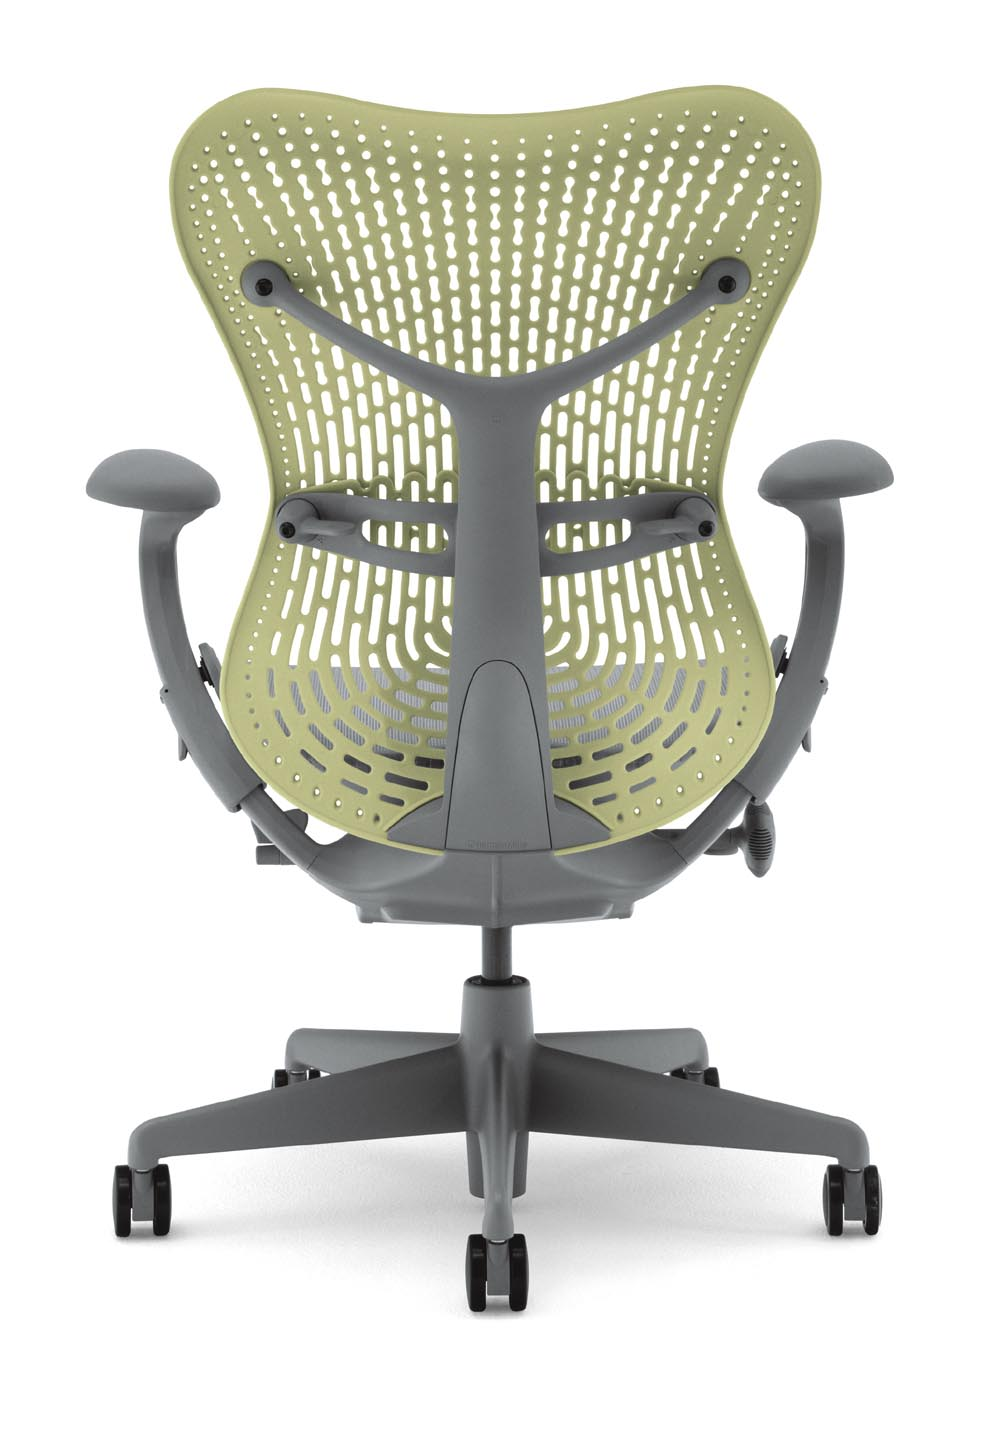 Flexible structures awol trends for Silla herman miller